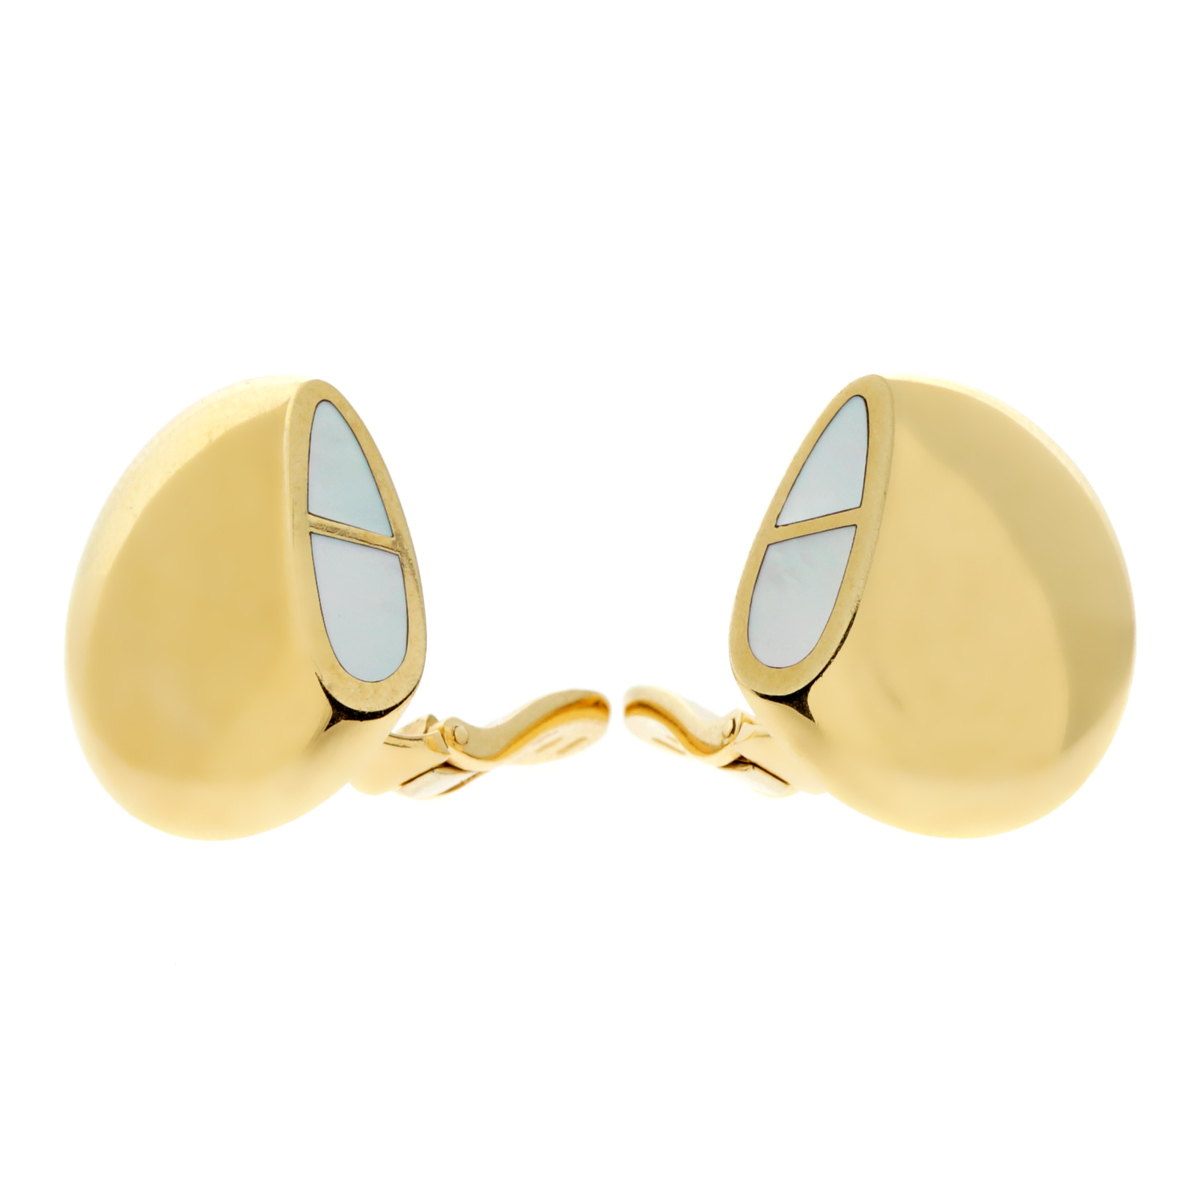 Hermes Mother of Pearl 18k Yellow Gold Earrings - Hermes Jewelry